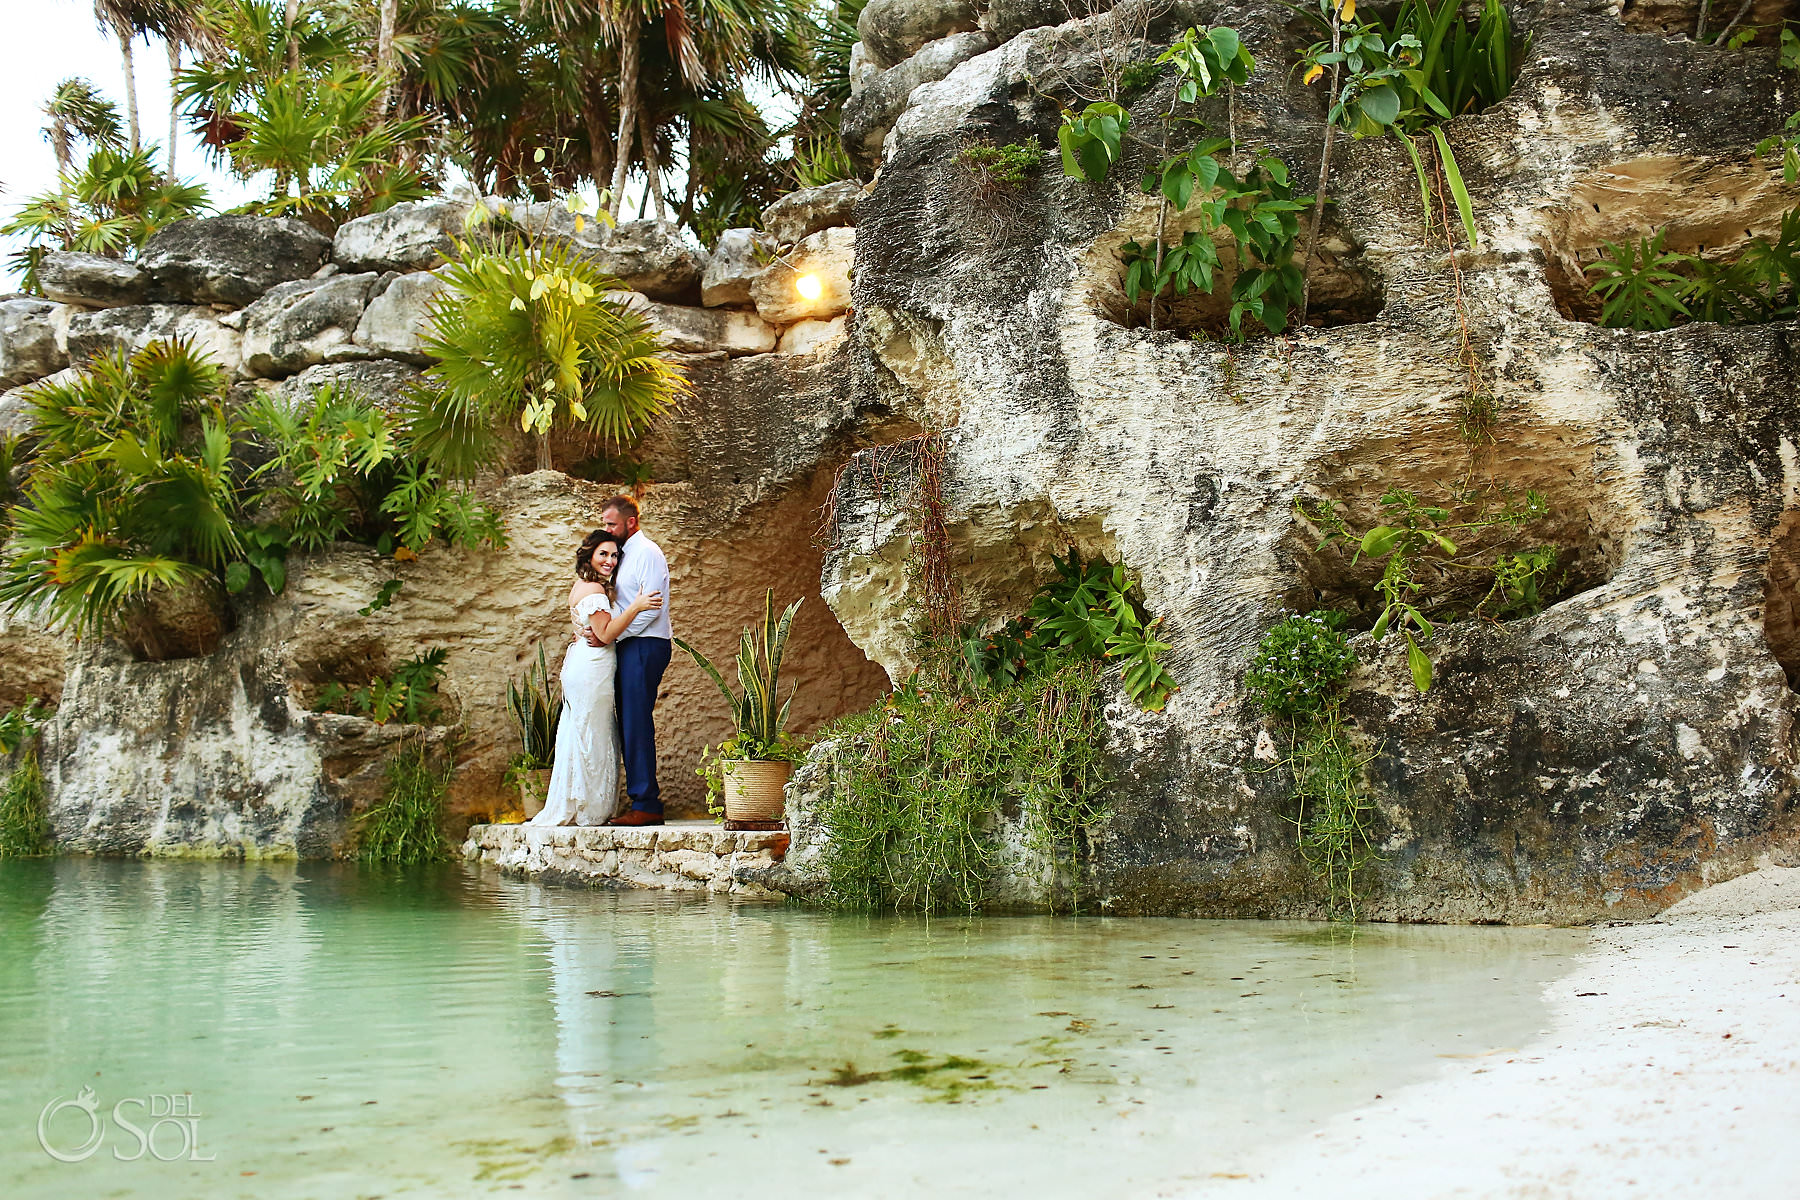 Hotel Xcaret Mexico Wedding reception location Cuevitas Caleta cave restaurant